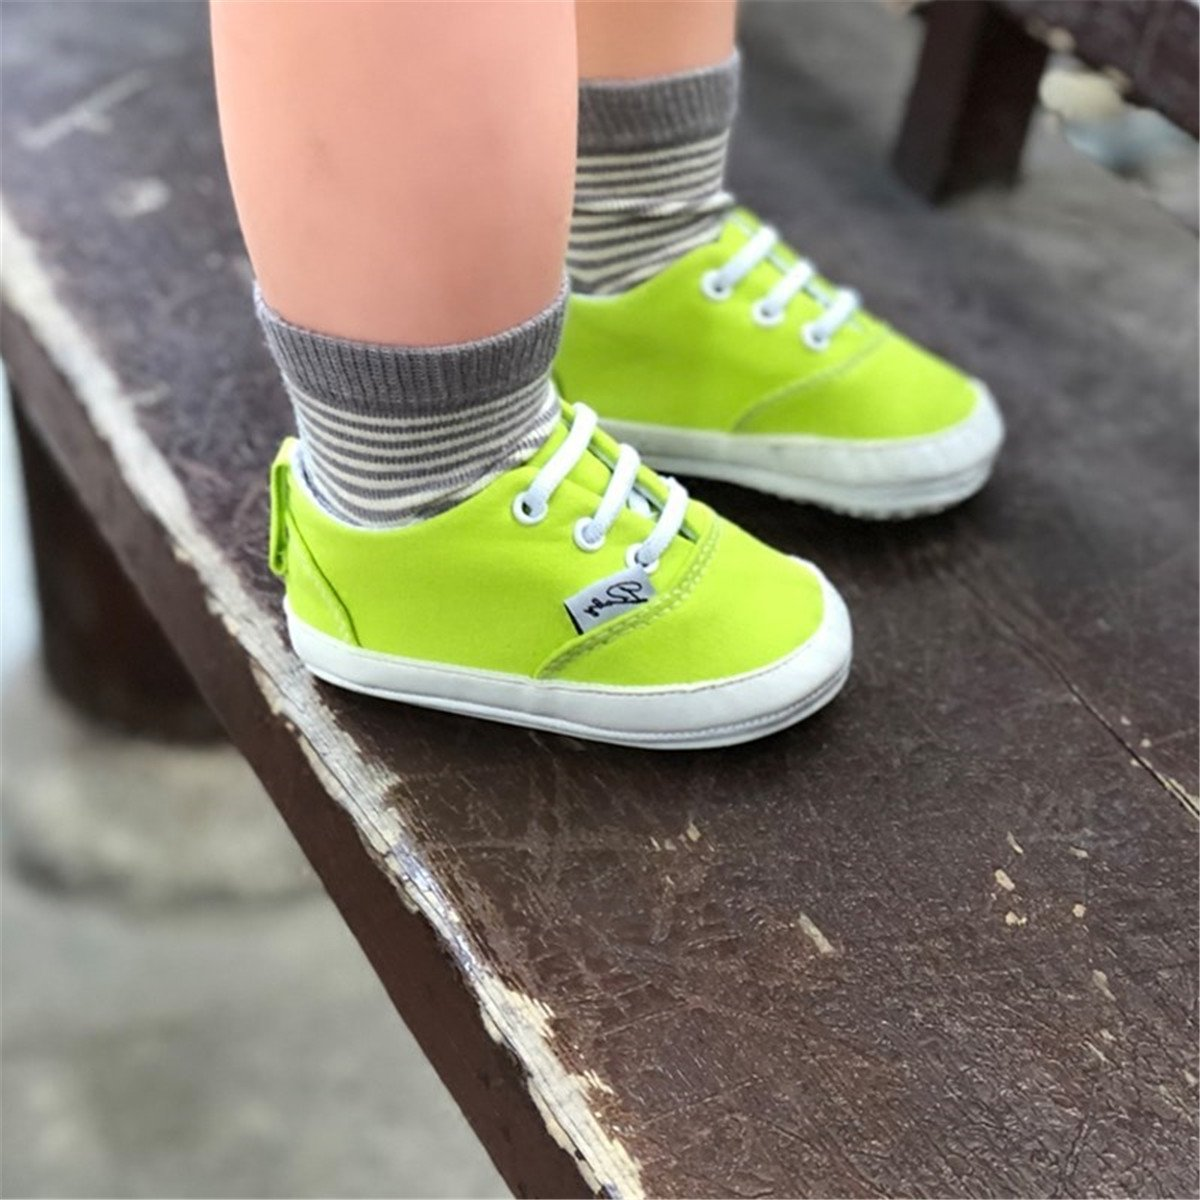 41a744f7c859ca BENHERO Baby Boys Girls Canvas Toddler Sneaker Anti-slip First Walkers  Candy Shoes 0-24 Months ...